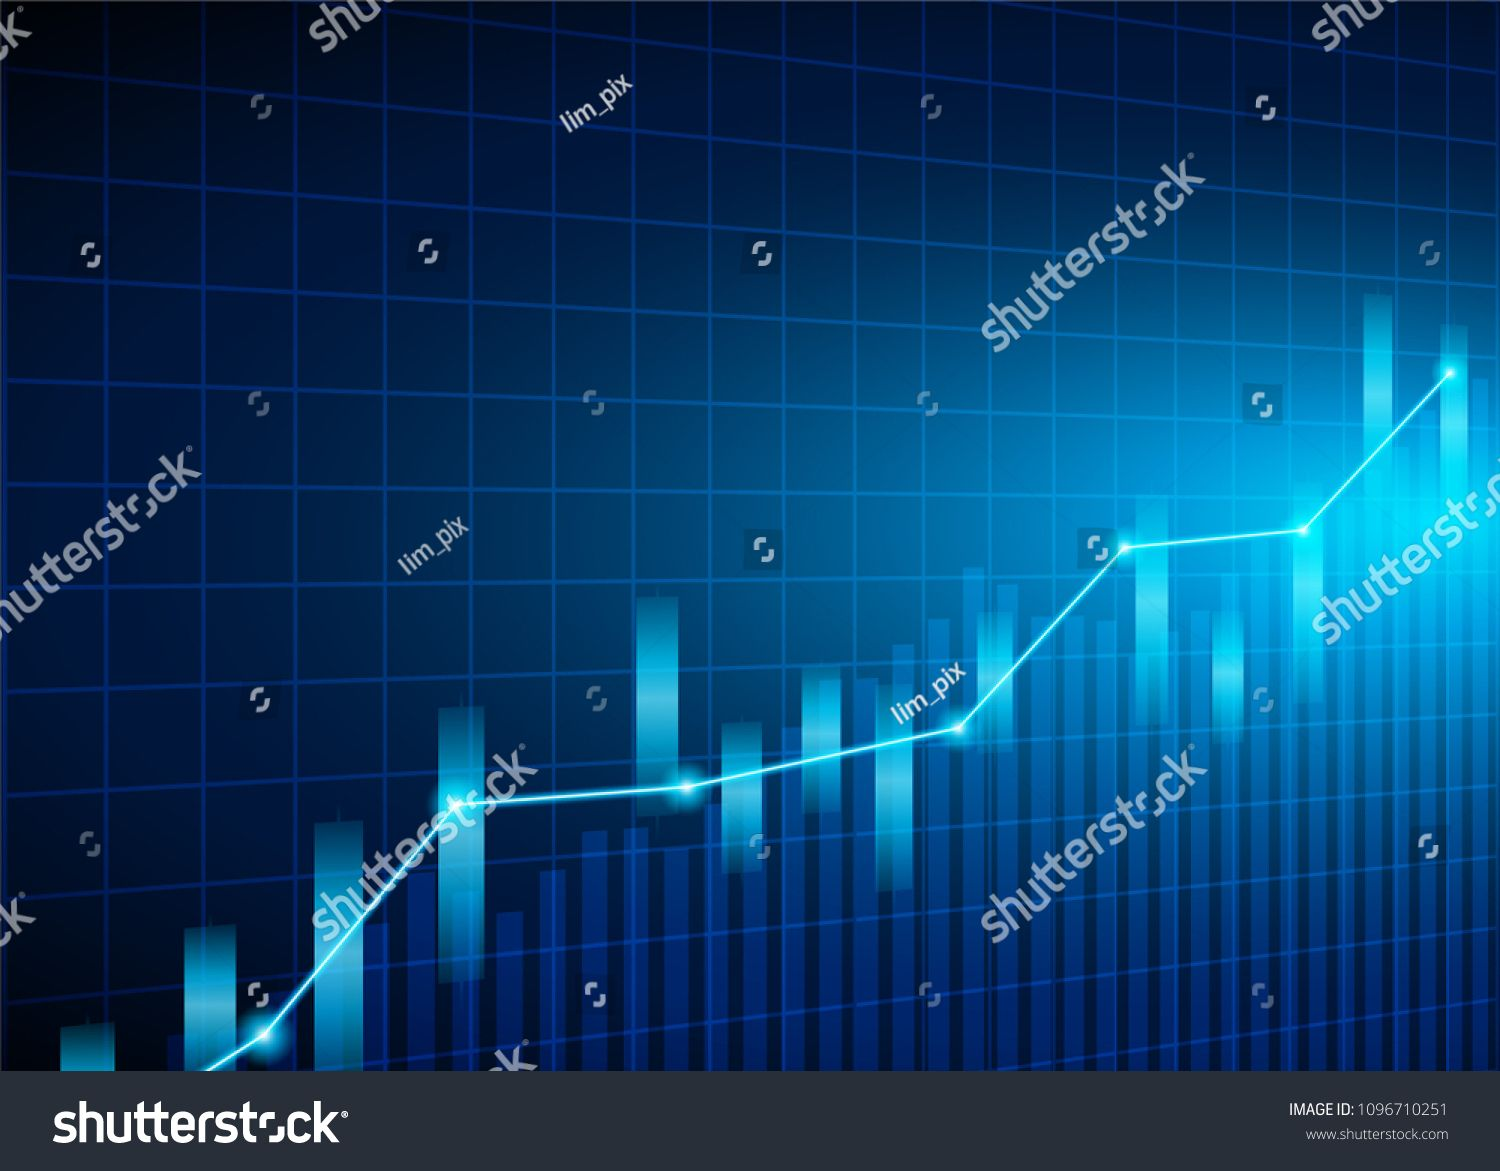 Stock Market Candle Stick Graph Chart Of Stock Market Investment Trading Stock Market Data Bullish P Stock Market Data Stock Market Investing Marketing Data